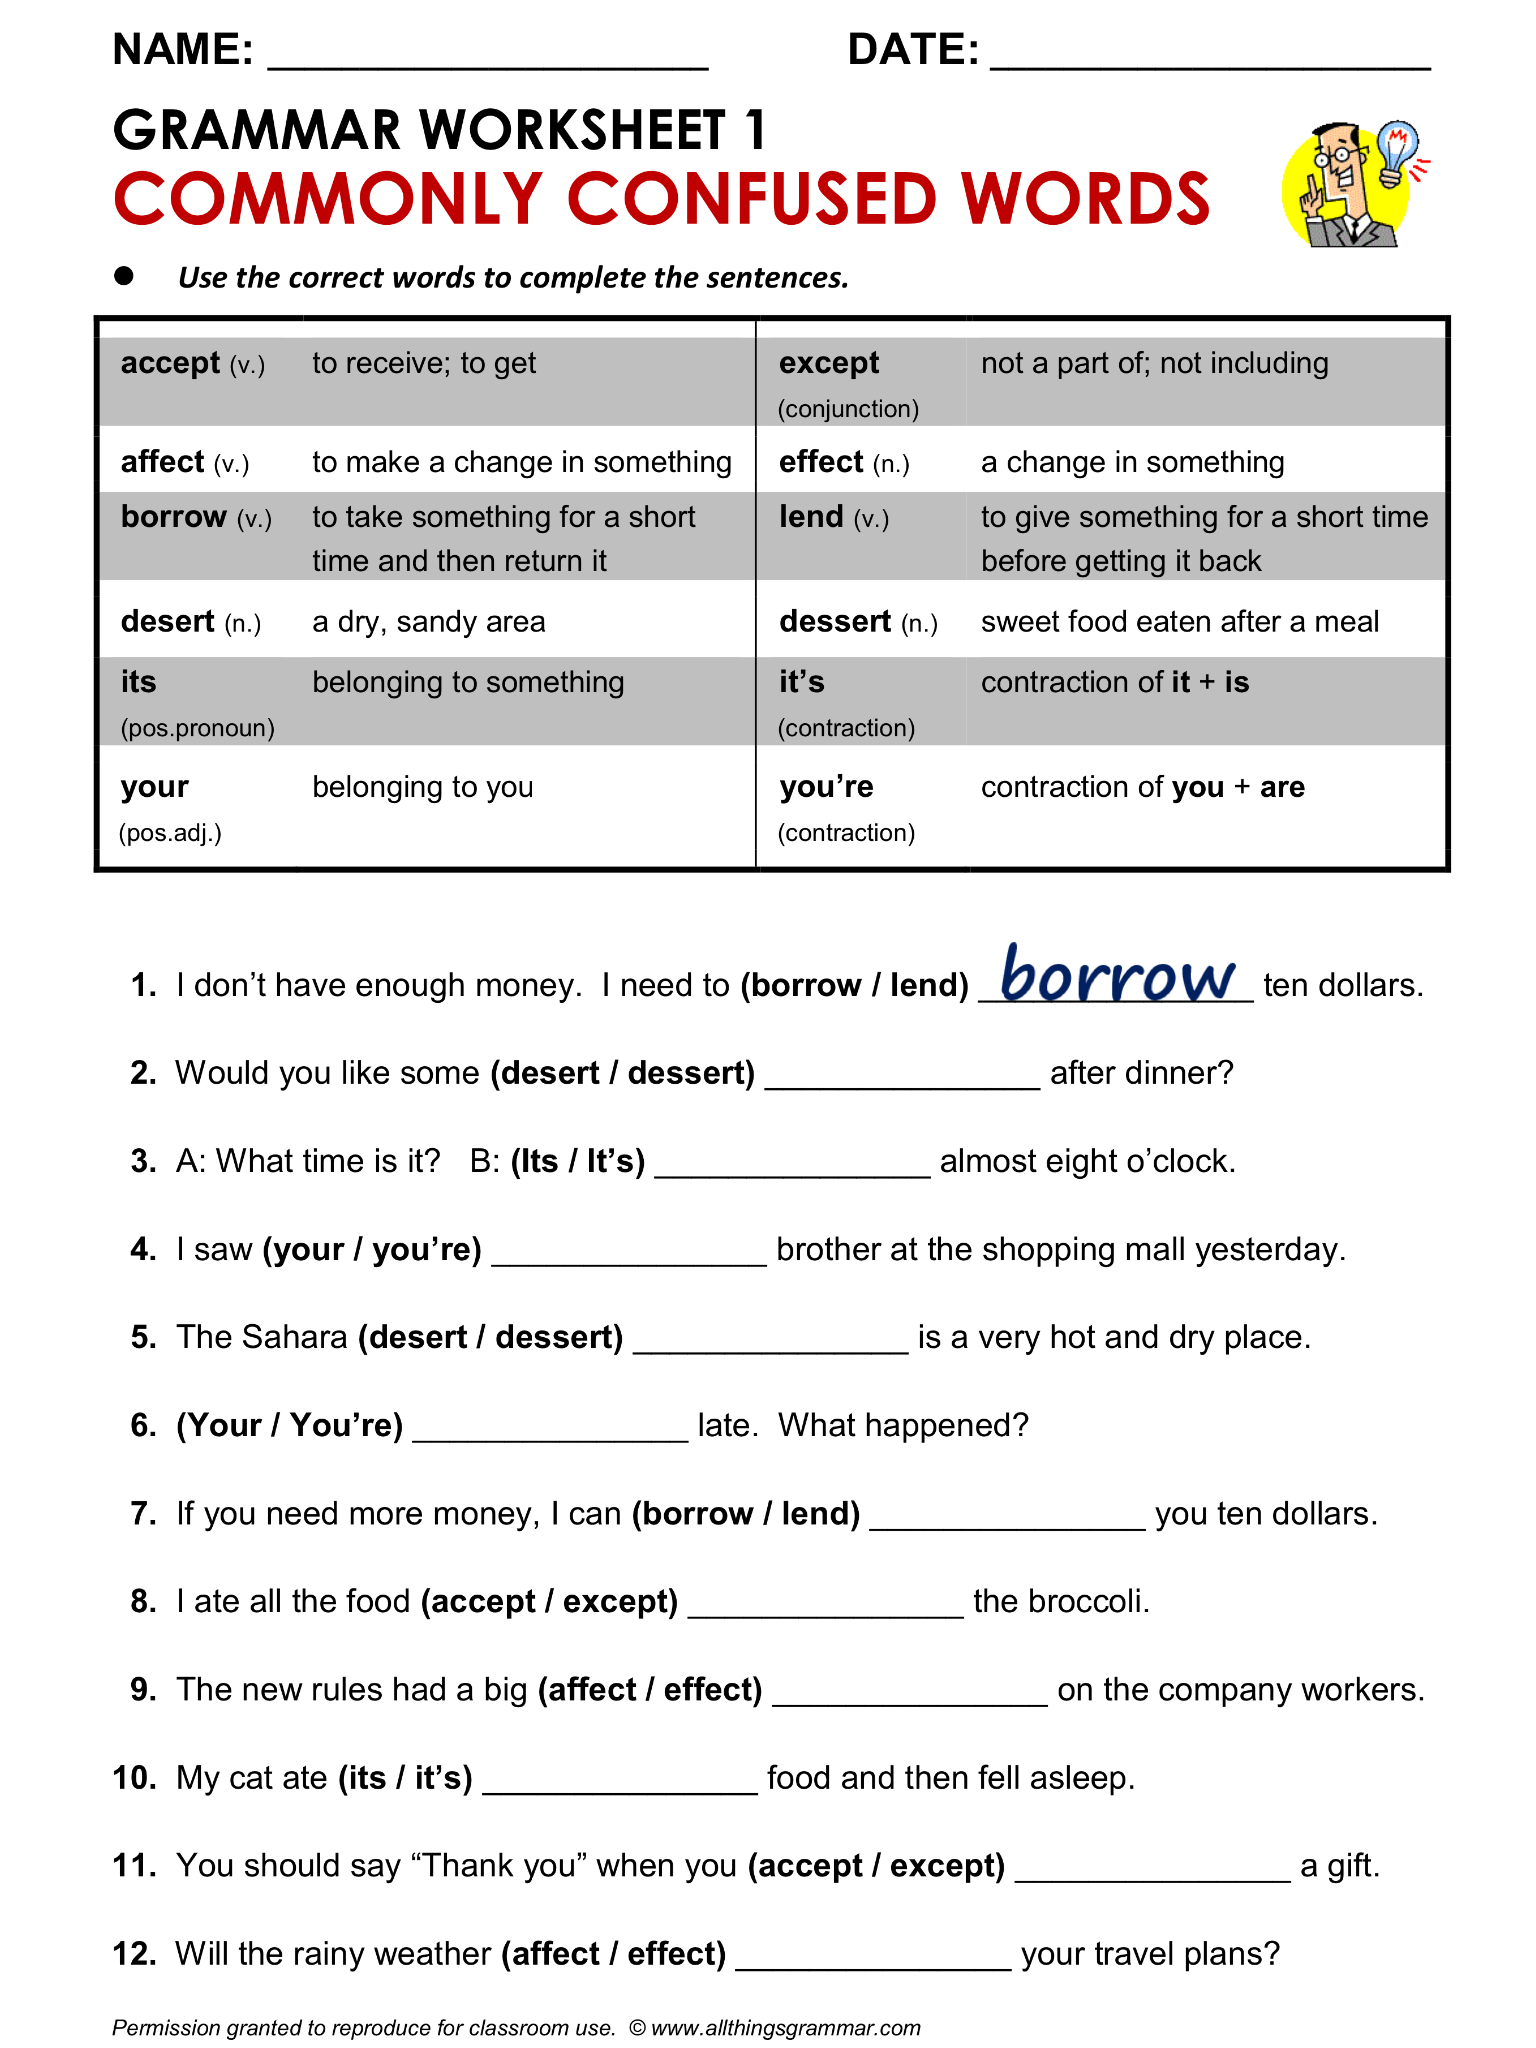 English Grammar Worksheet Commonly Confused Words 1